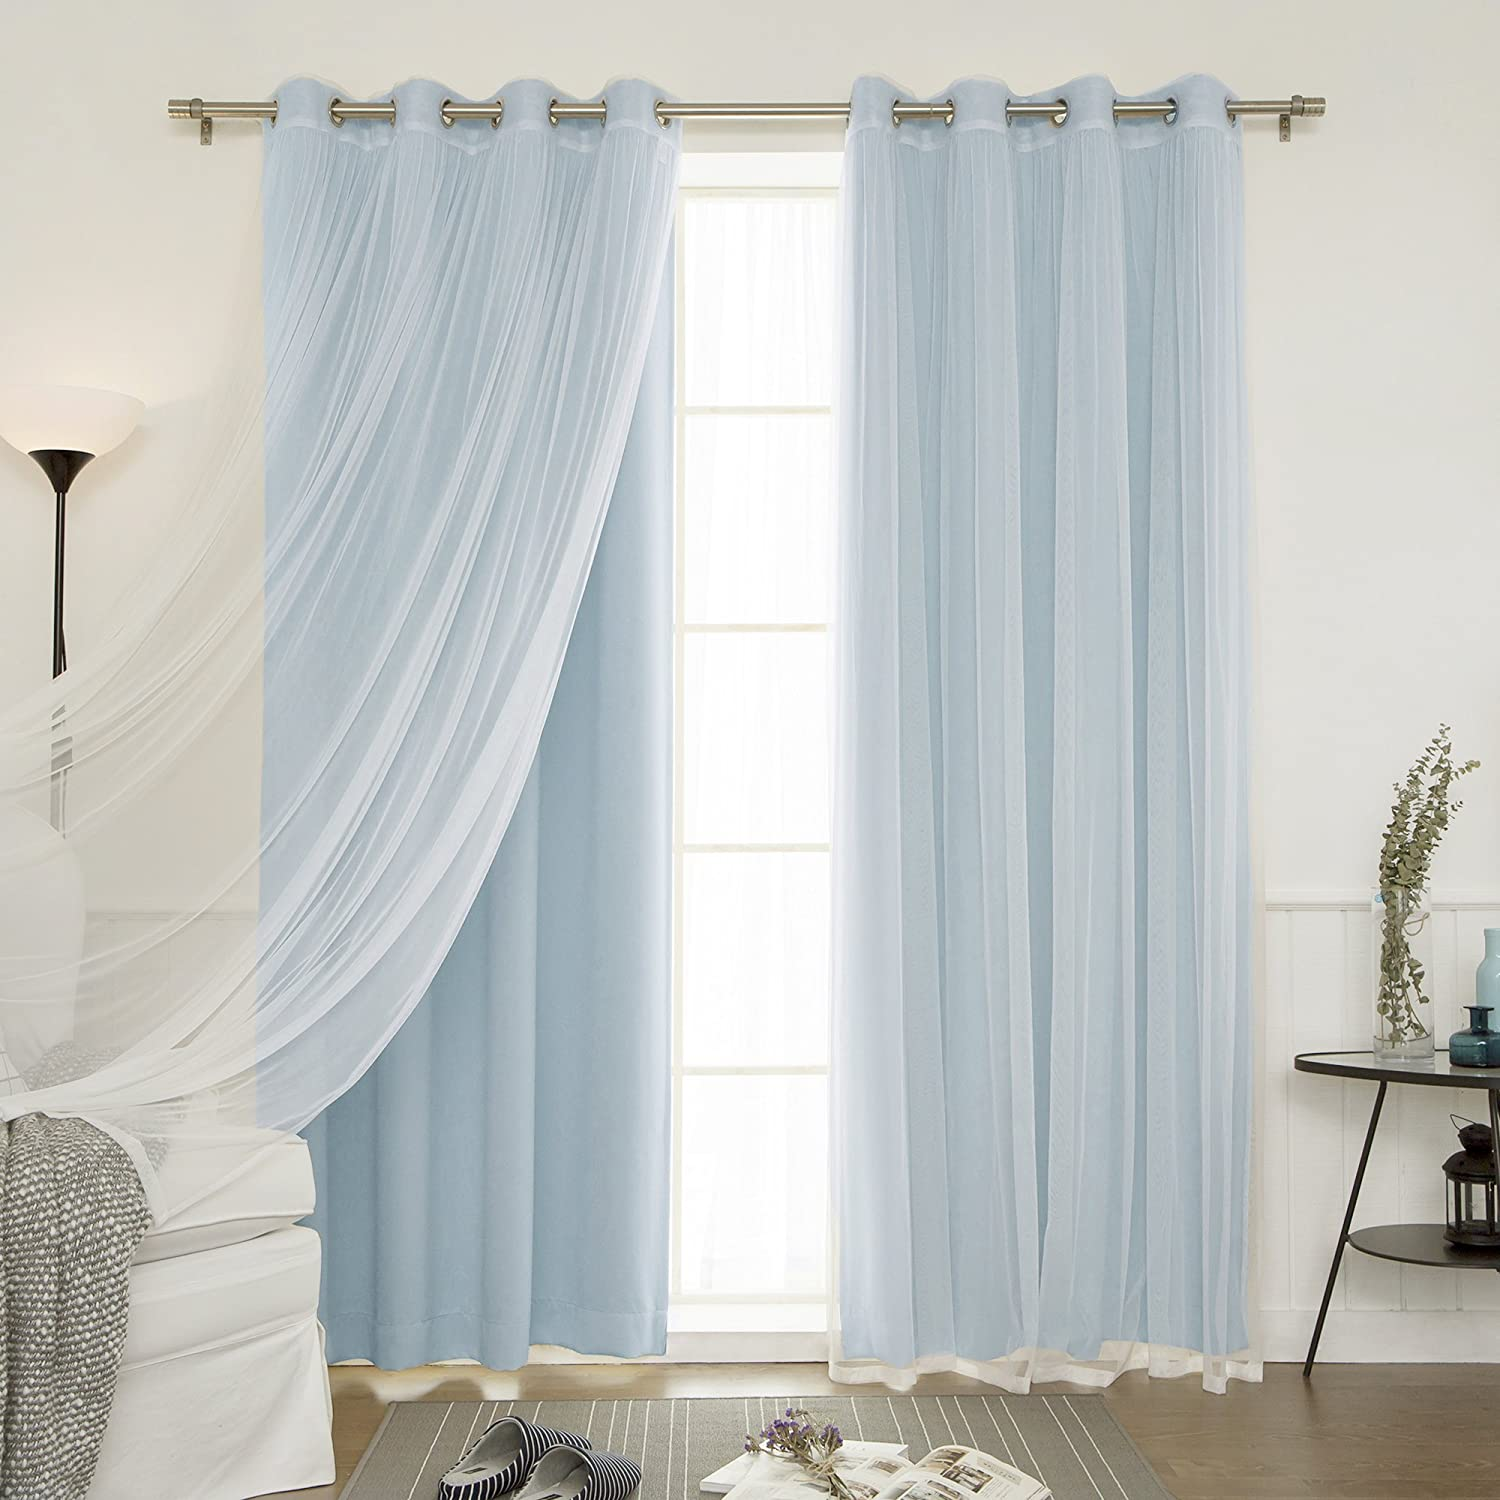 Best Home Fashion uMIXm Mix and Match Tulle Sheer Lace and Blackout 4 Piece Curtain Set – Stainless Steel Nickel Grommet Top – Ocean